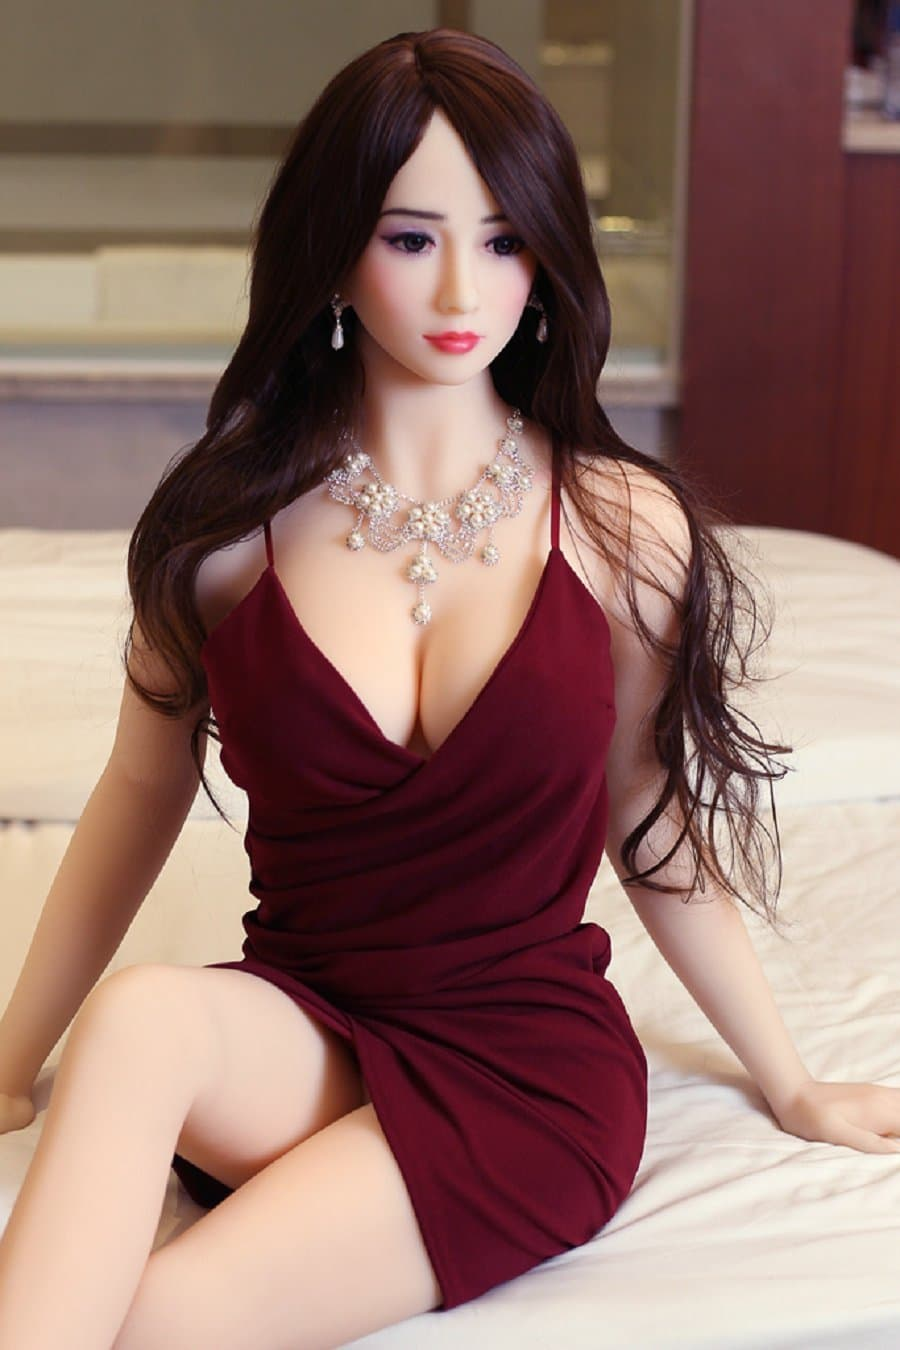 madison 158cm af brown hair medium tits skinny tpe sex doll(6)